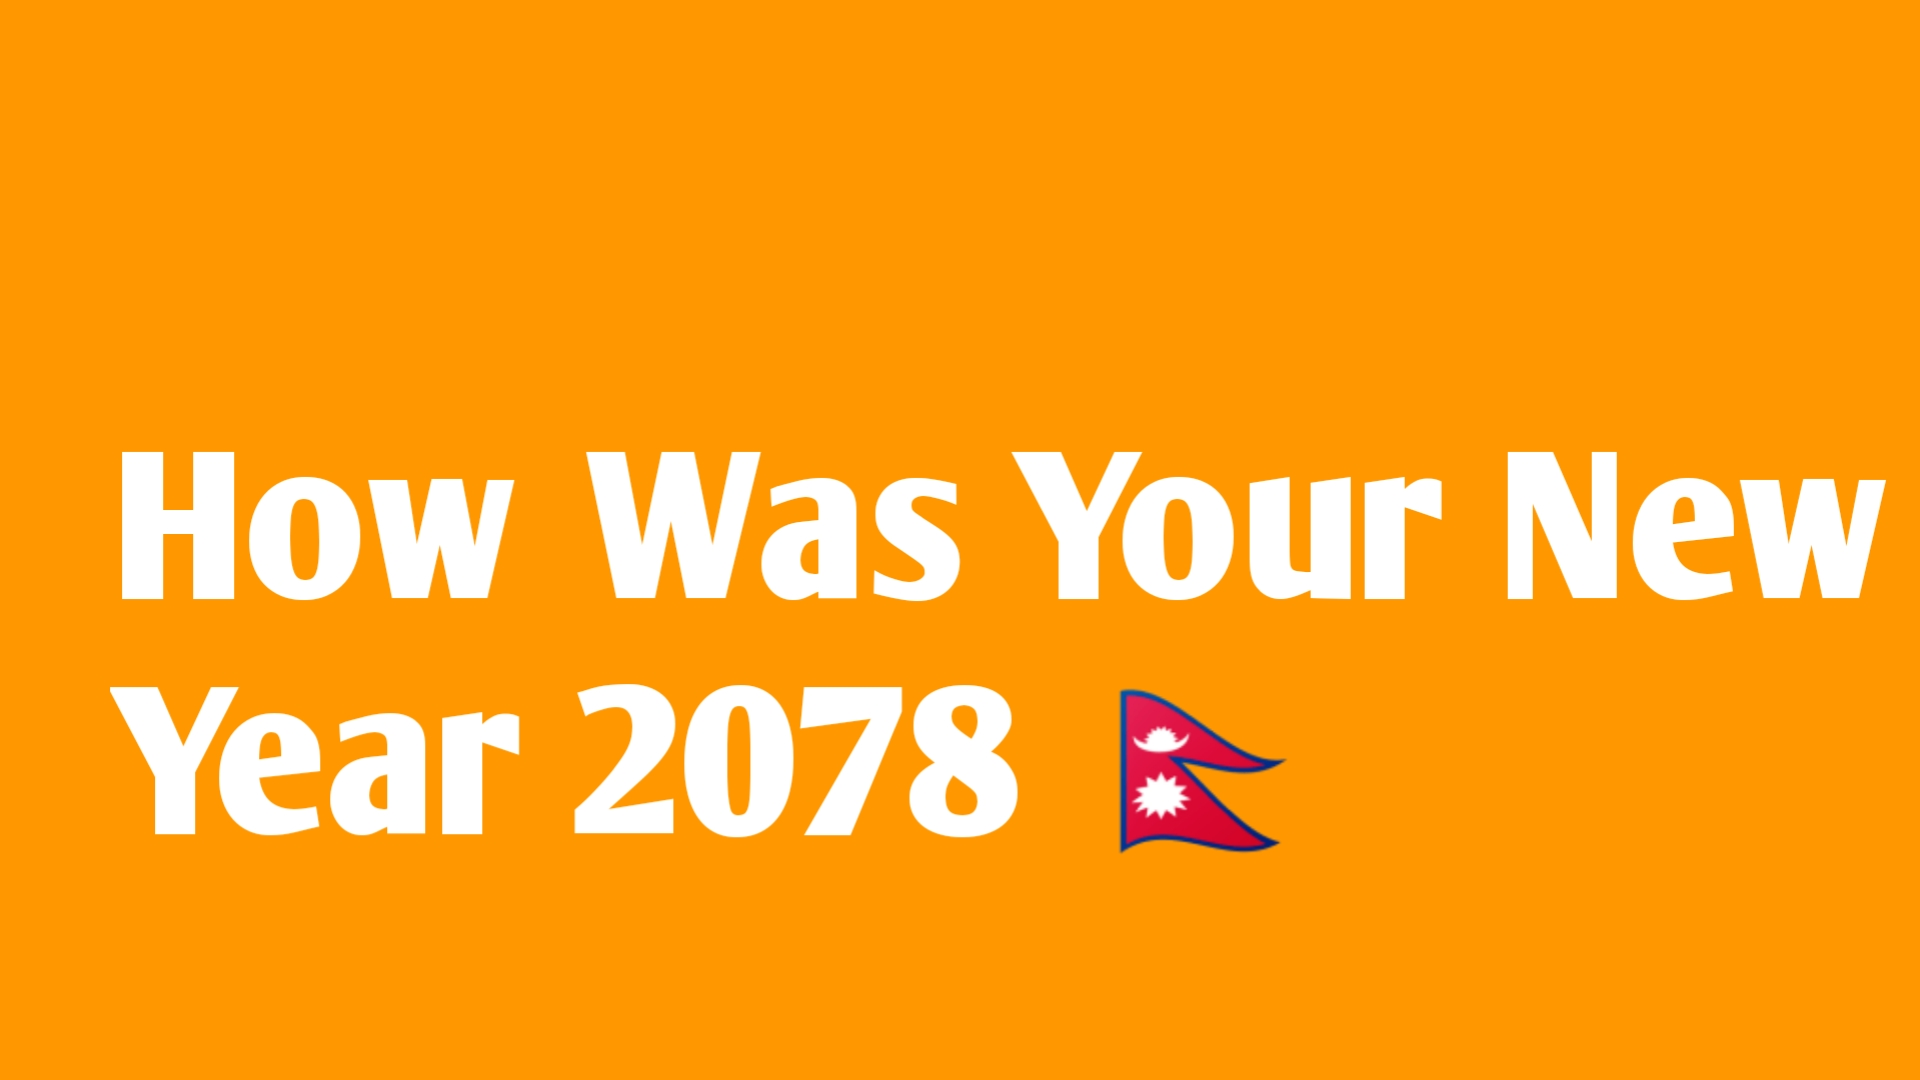 How was your New Year 2078